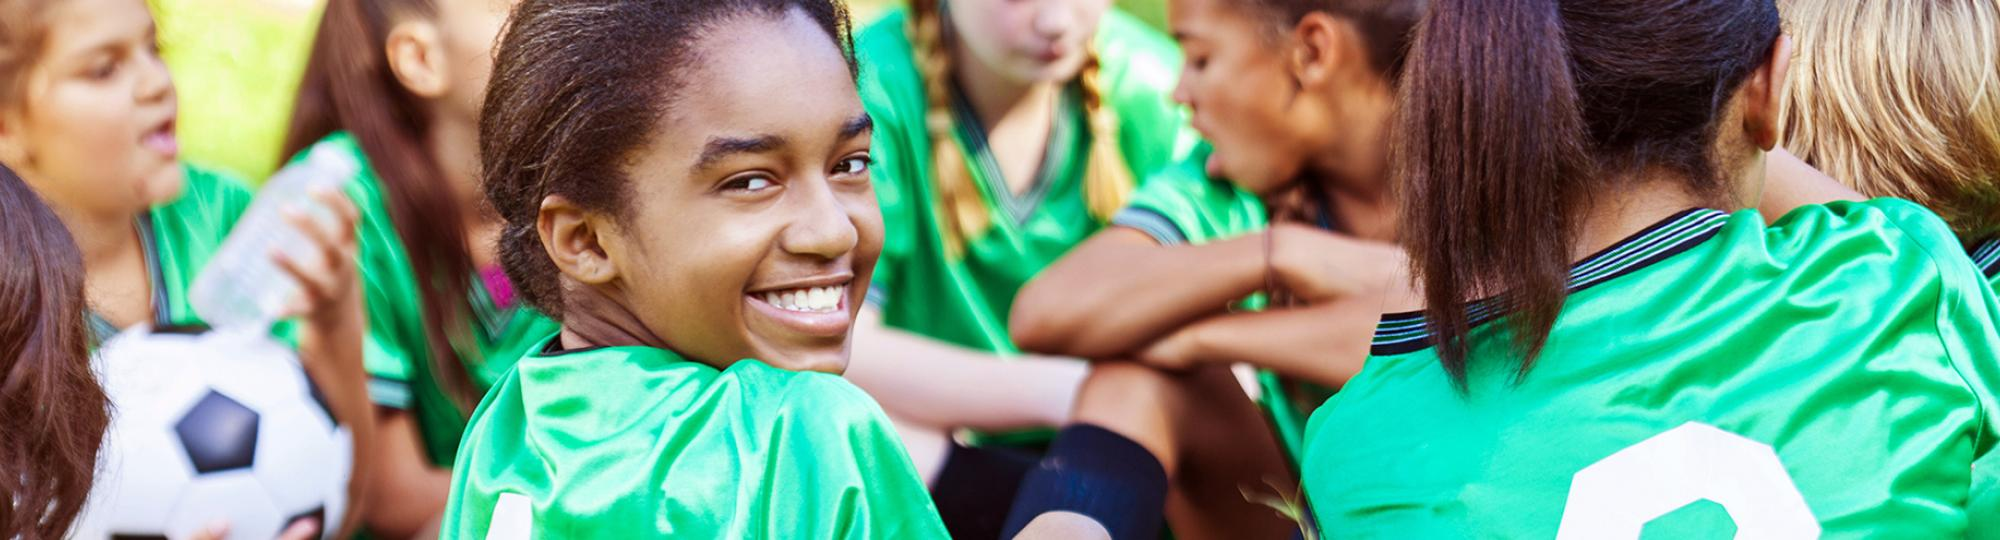 Girls in bright green soccer jerseys, one turning to the camera and smiling